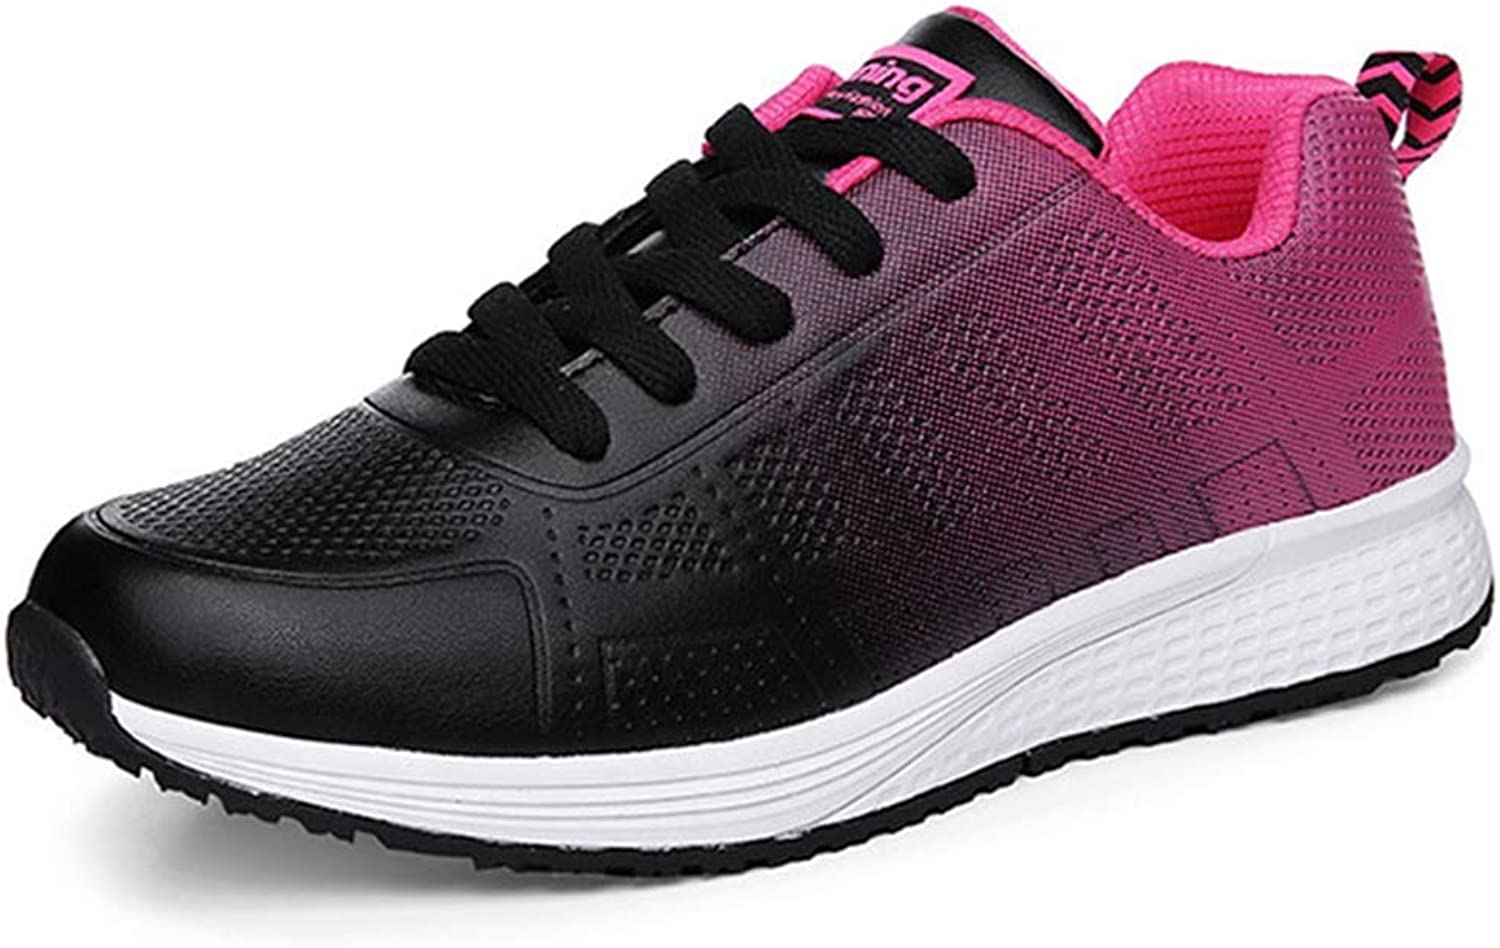 GIY Womens Fashion Sneakers Comfort Breathable Lightweight Casual Walking shoes Sport Running shoes